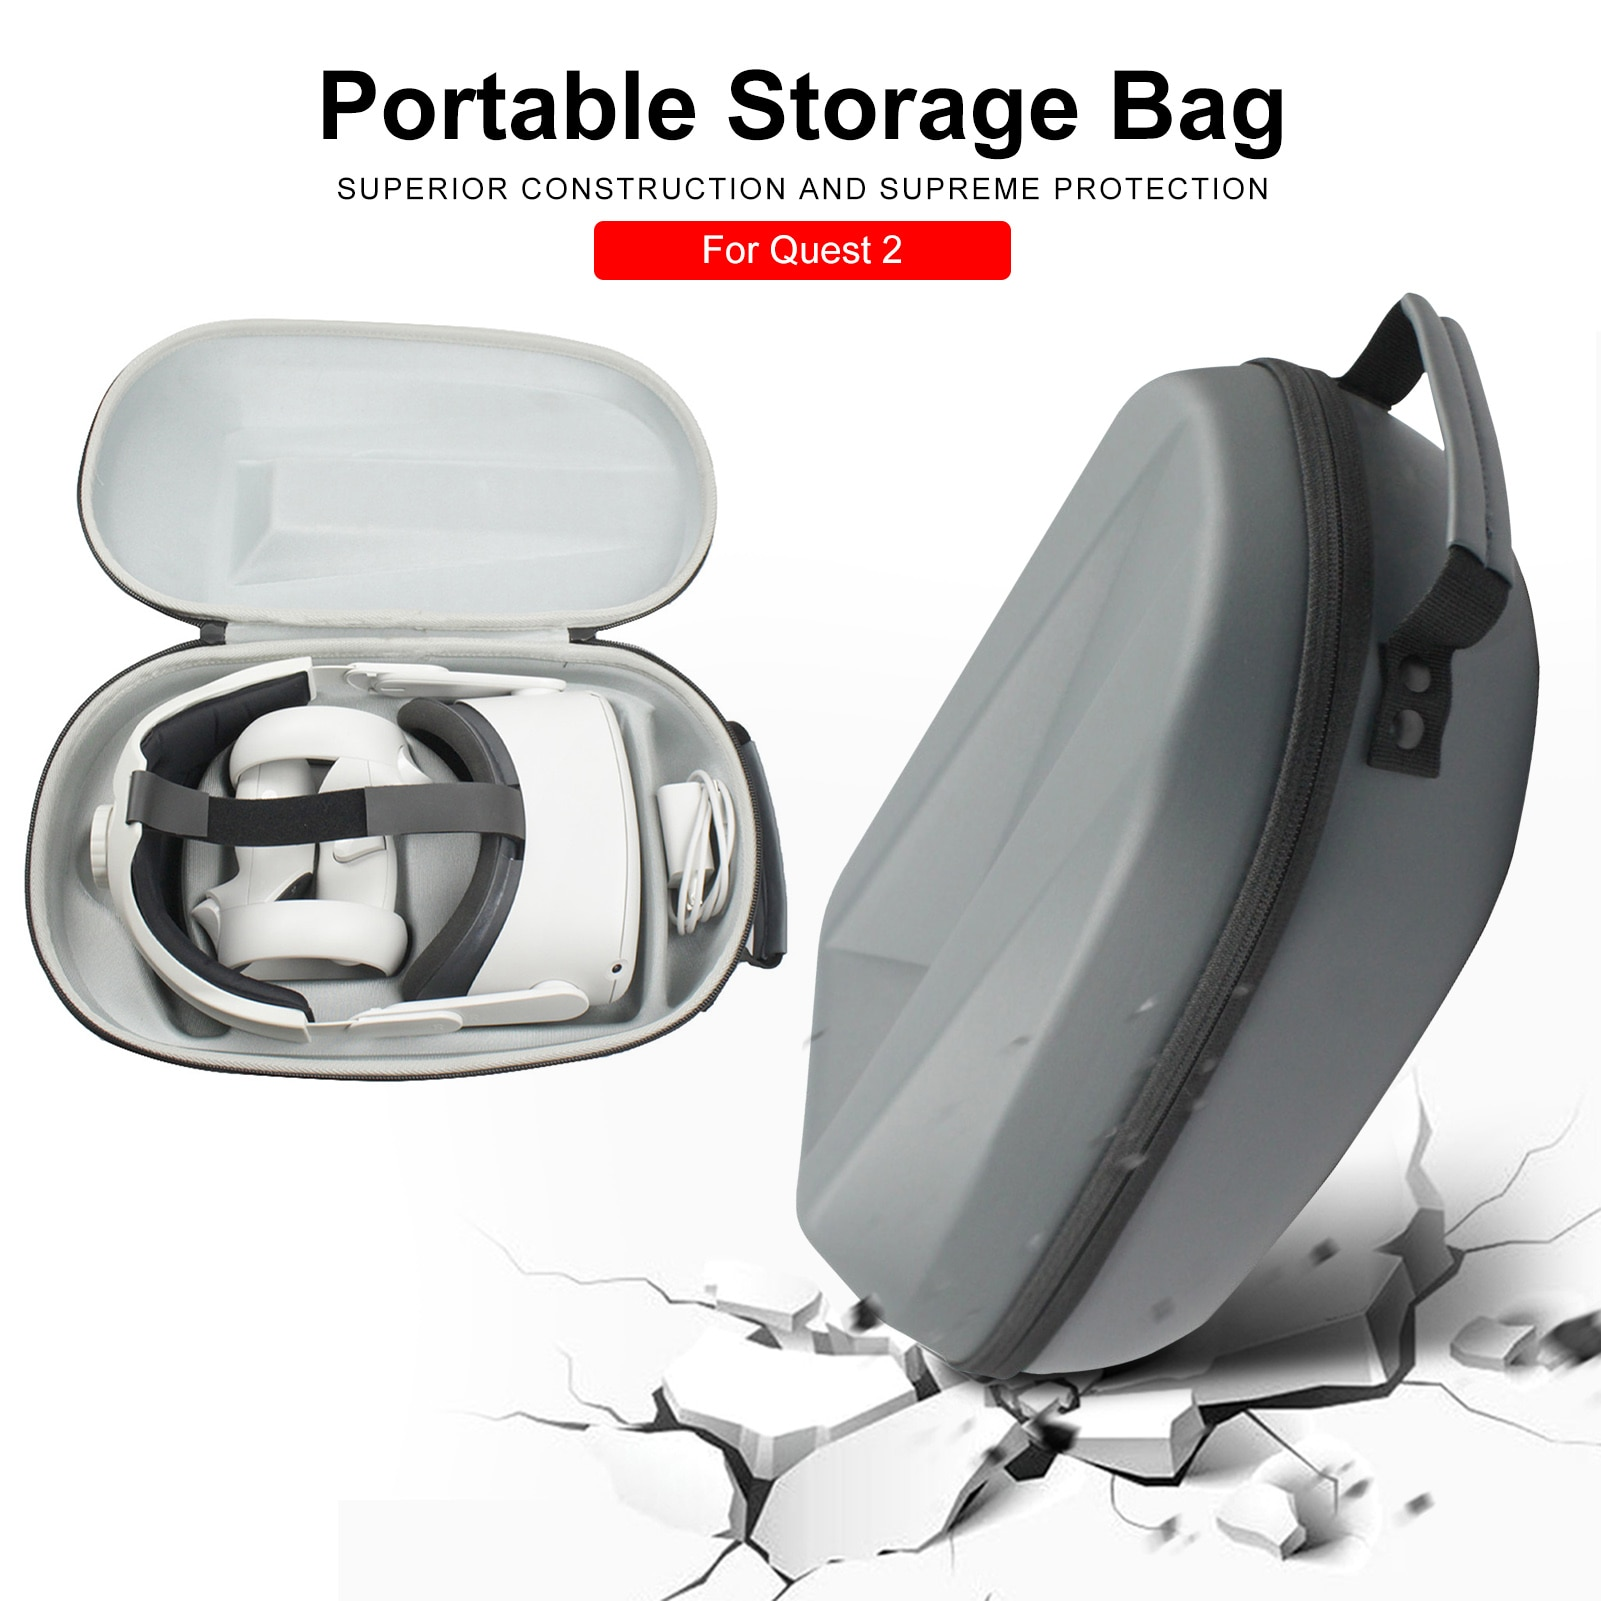 Hot Protective Shockproof VR Gaming Headset Carrying Case VR Gaming Headsets Carrying Case Unique Bag for Quest 2 Dropshipping недорого